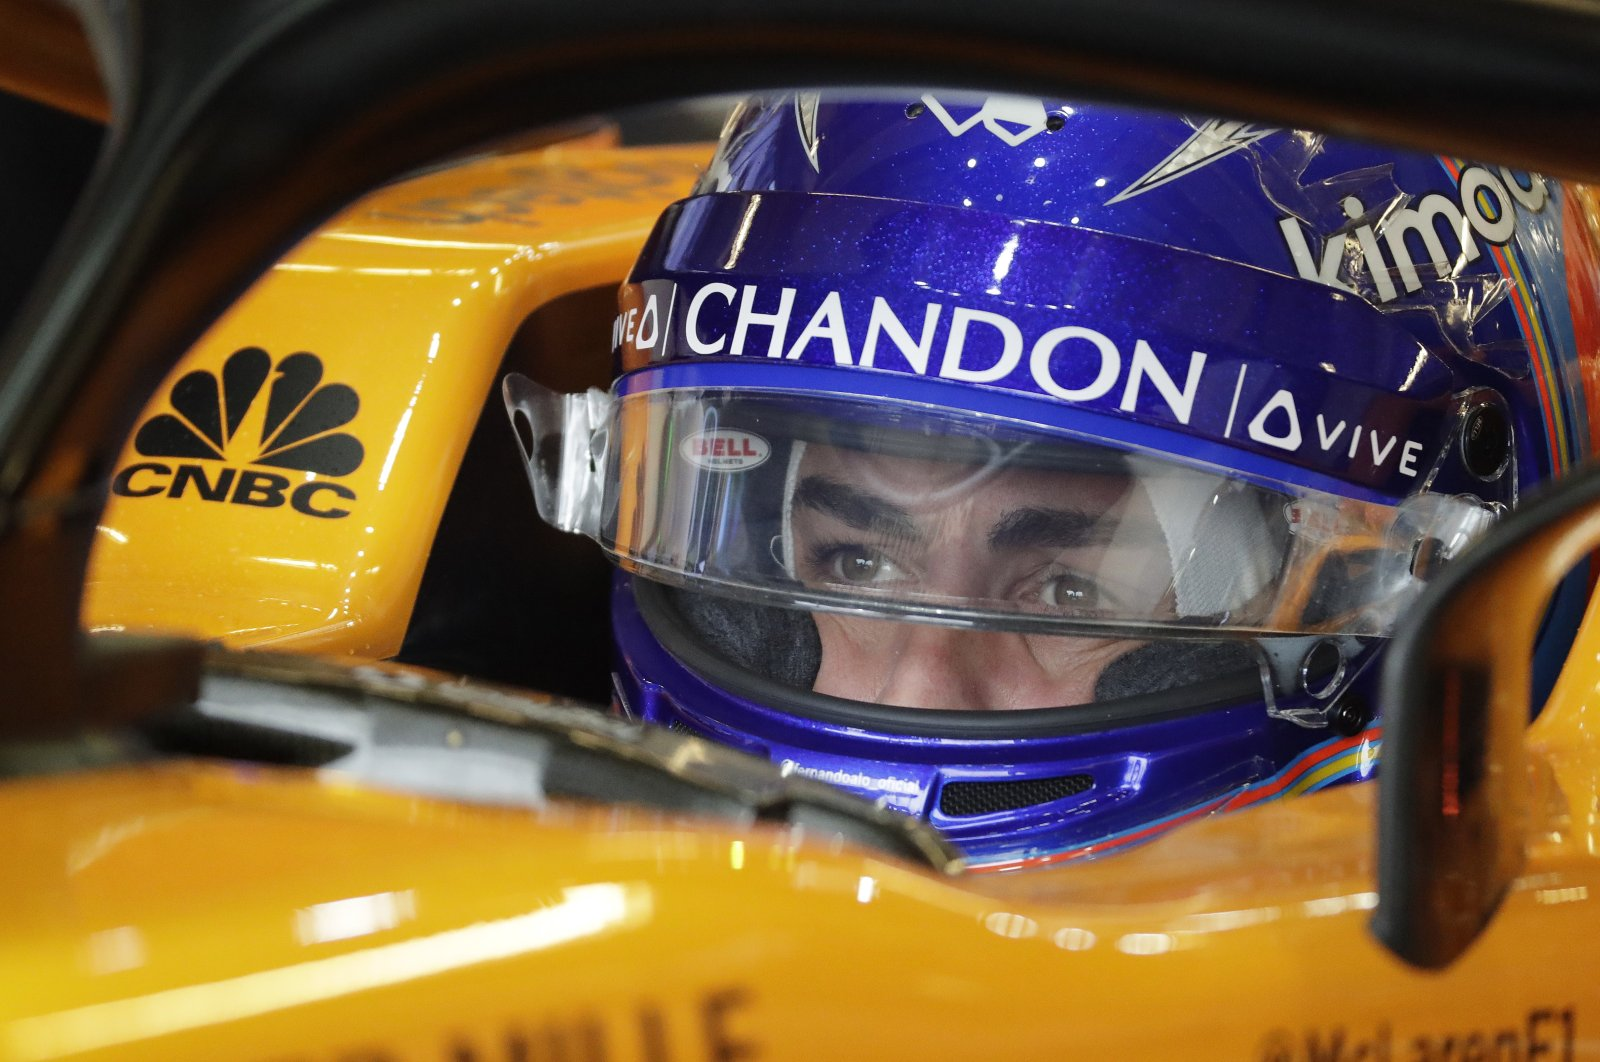 Fernando Alonso sits in his car during a Formula 1 practice session, in Austin, Texas, Oct. 19, 2018. (AP Photo)